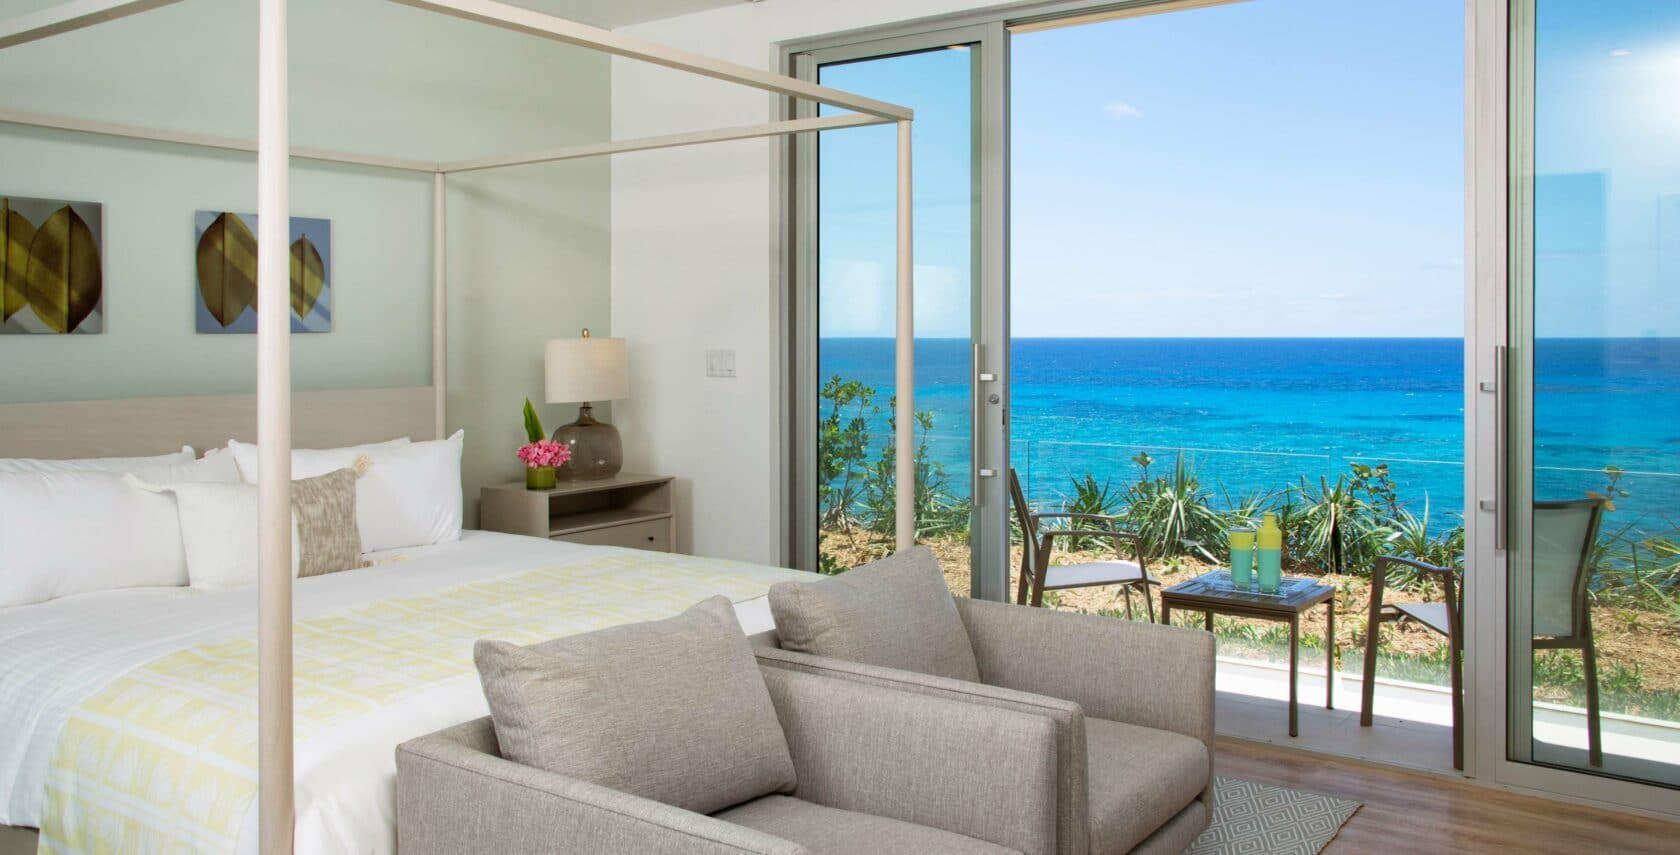 A bedroom with large sliding glass doors leading to a patio overlooking the ocean.